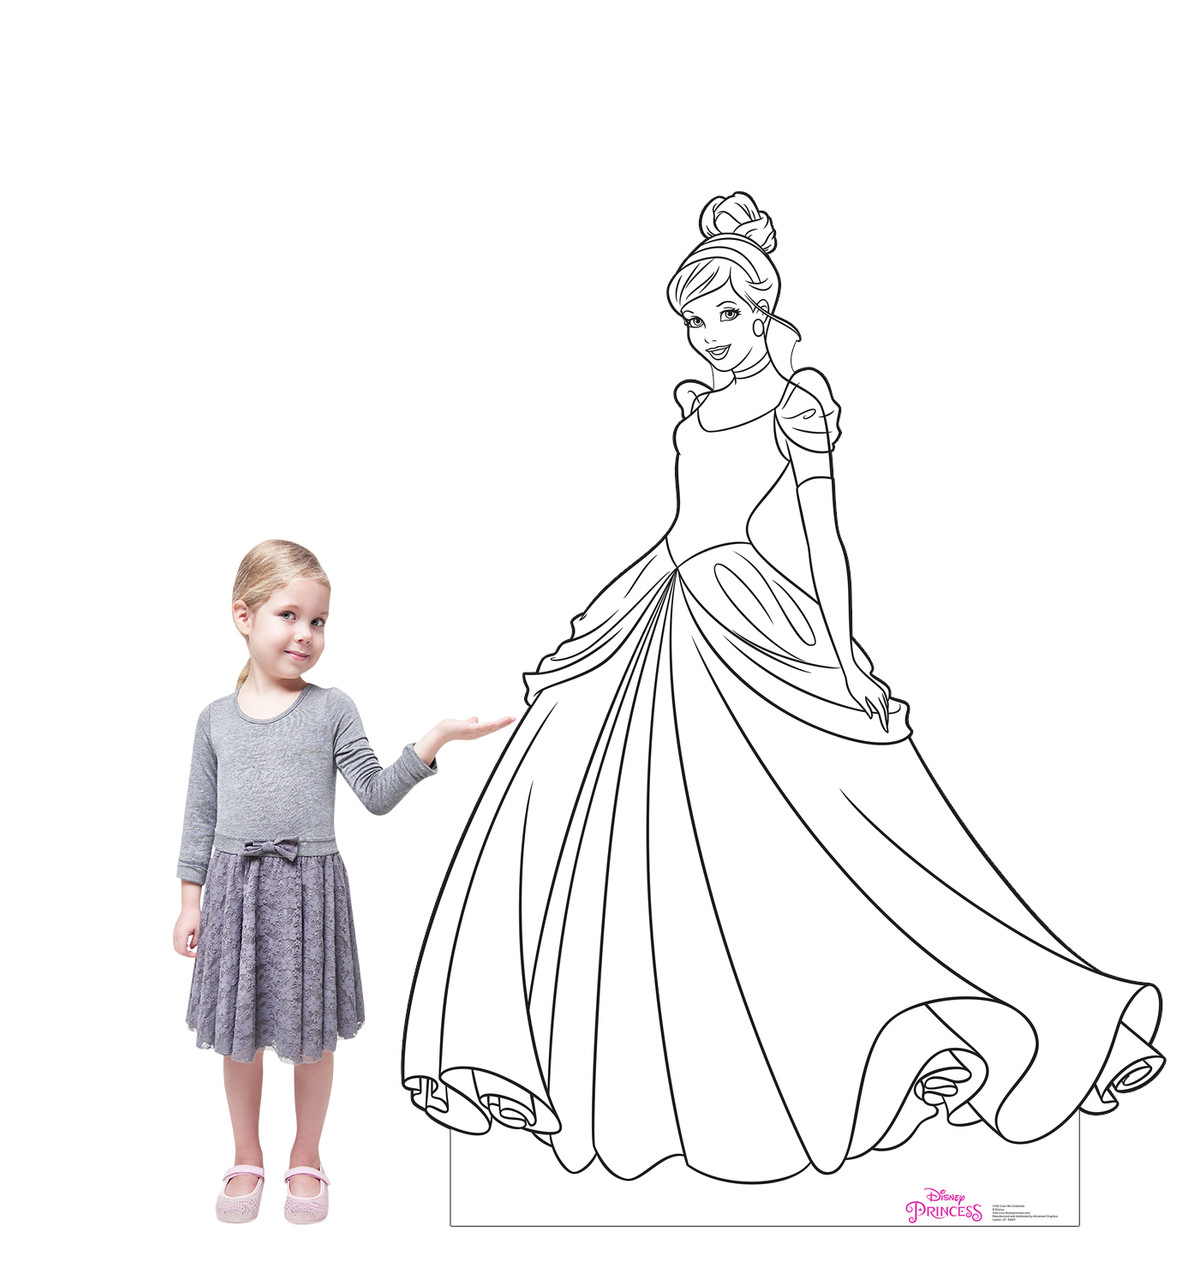 Life-size cardboard standee of Color Me Cinderella from Disney Princesses with model.